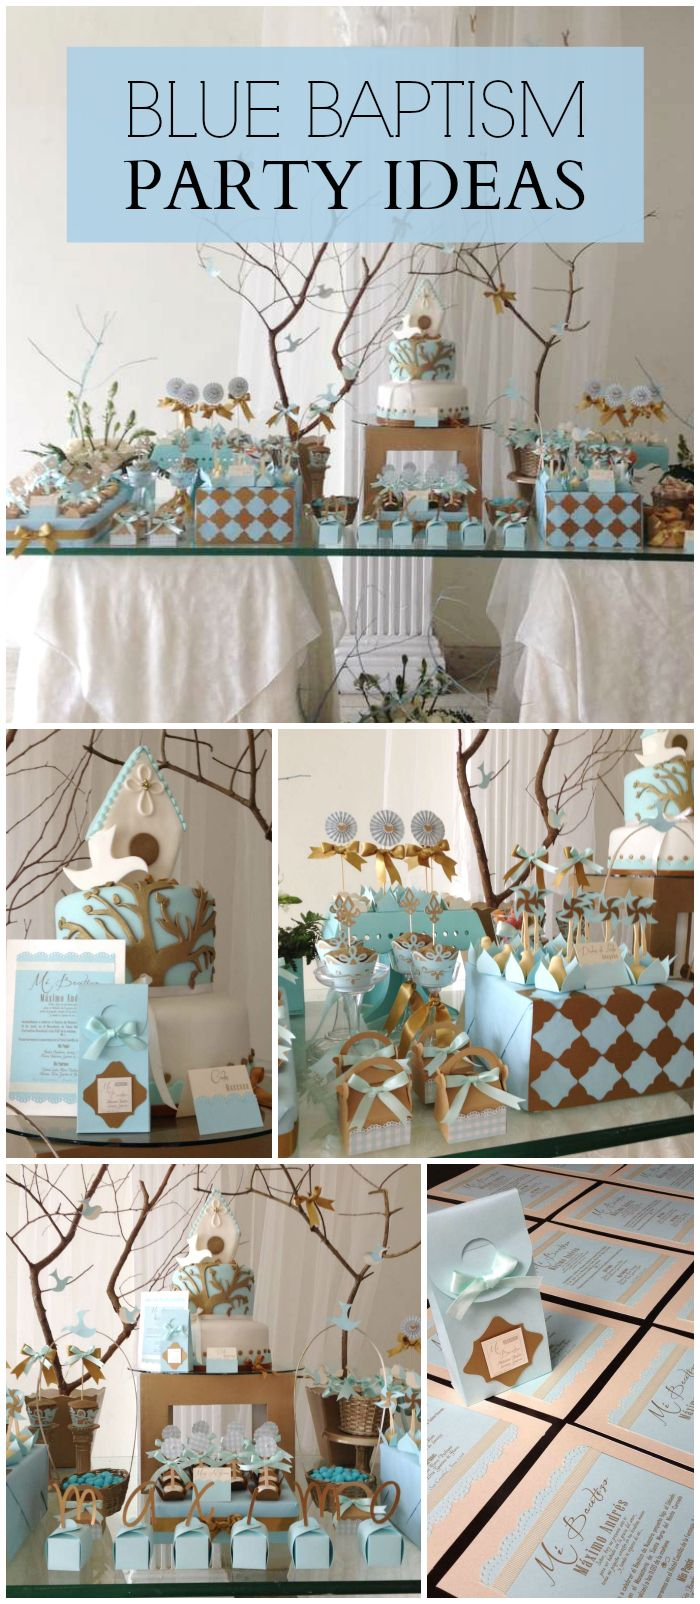 A blue baptism party for a baby boy with lovely party decorations and treats! #baptismideas #boybaptism